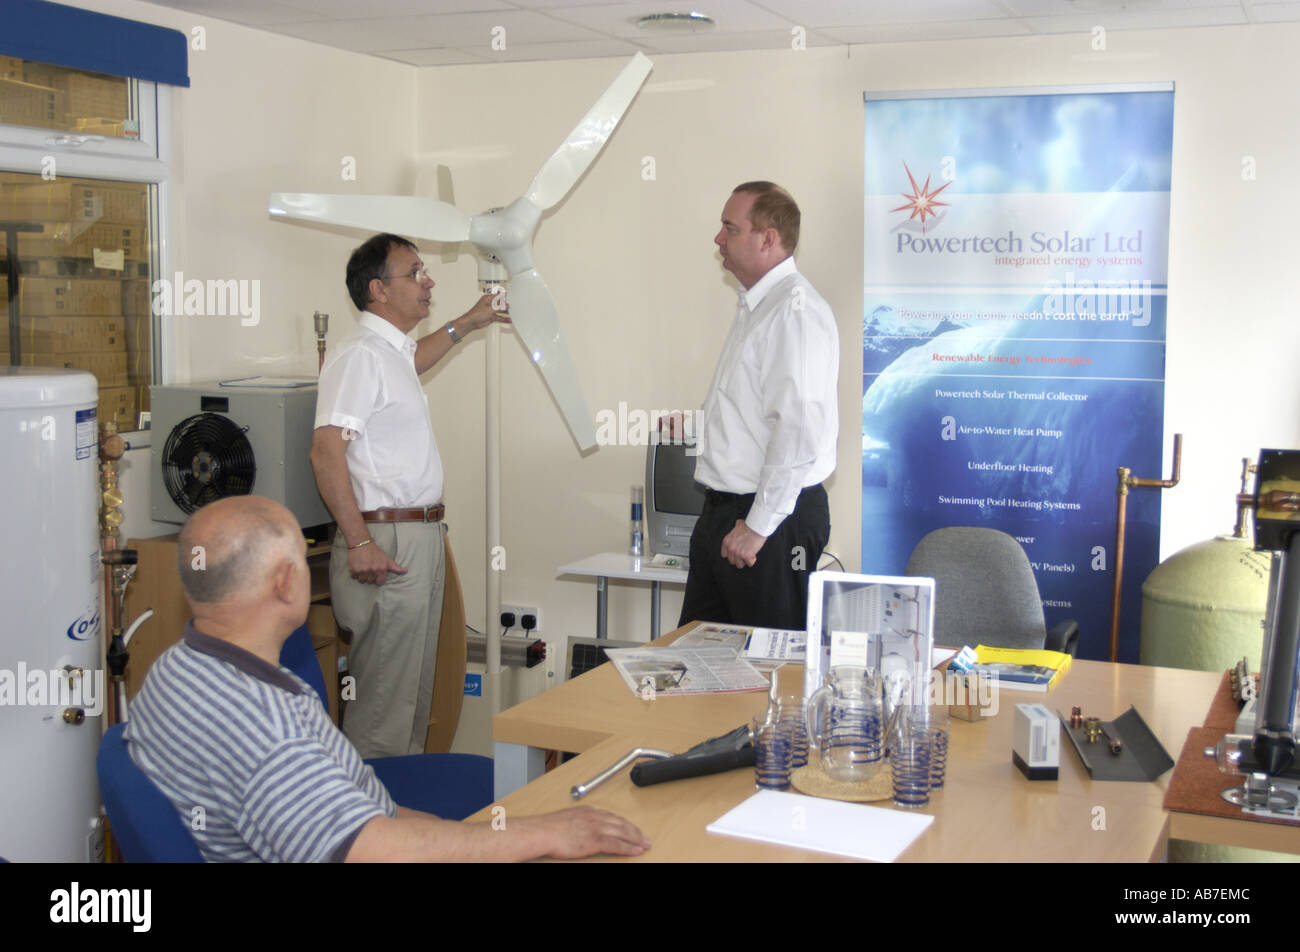 Techinicians being instucted in the instalation and use of Micro Wind Turbines and other micro power systems at Powertech Solar - Stock Image